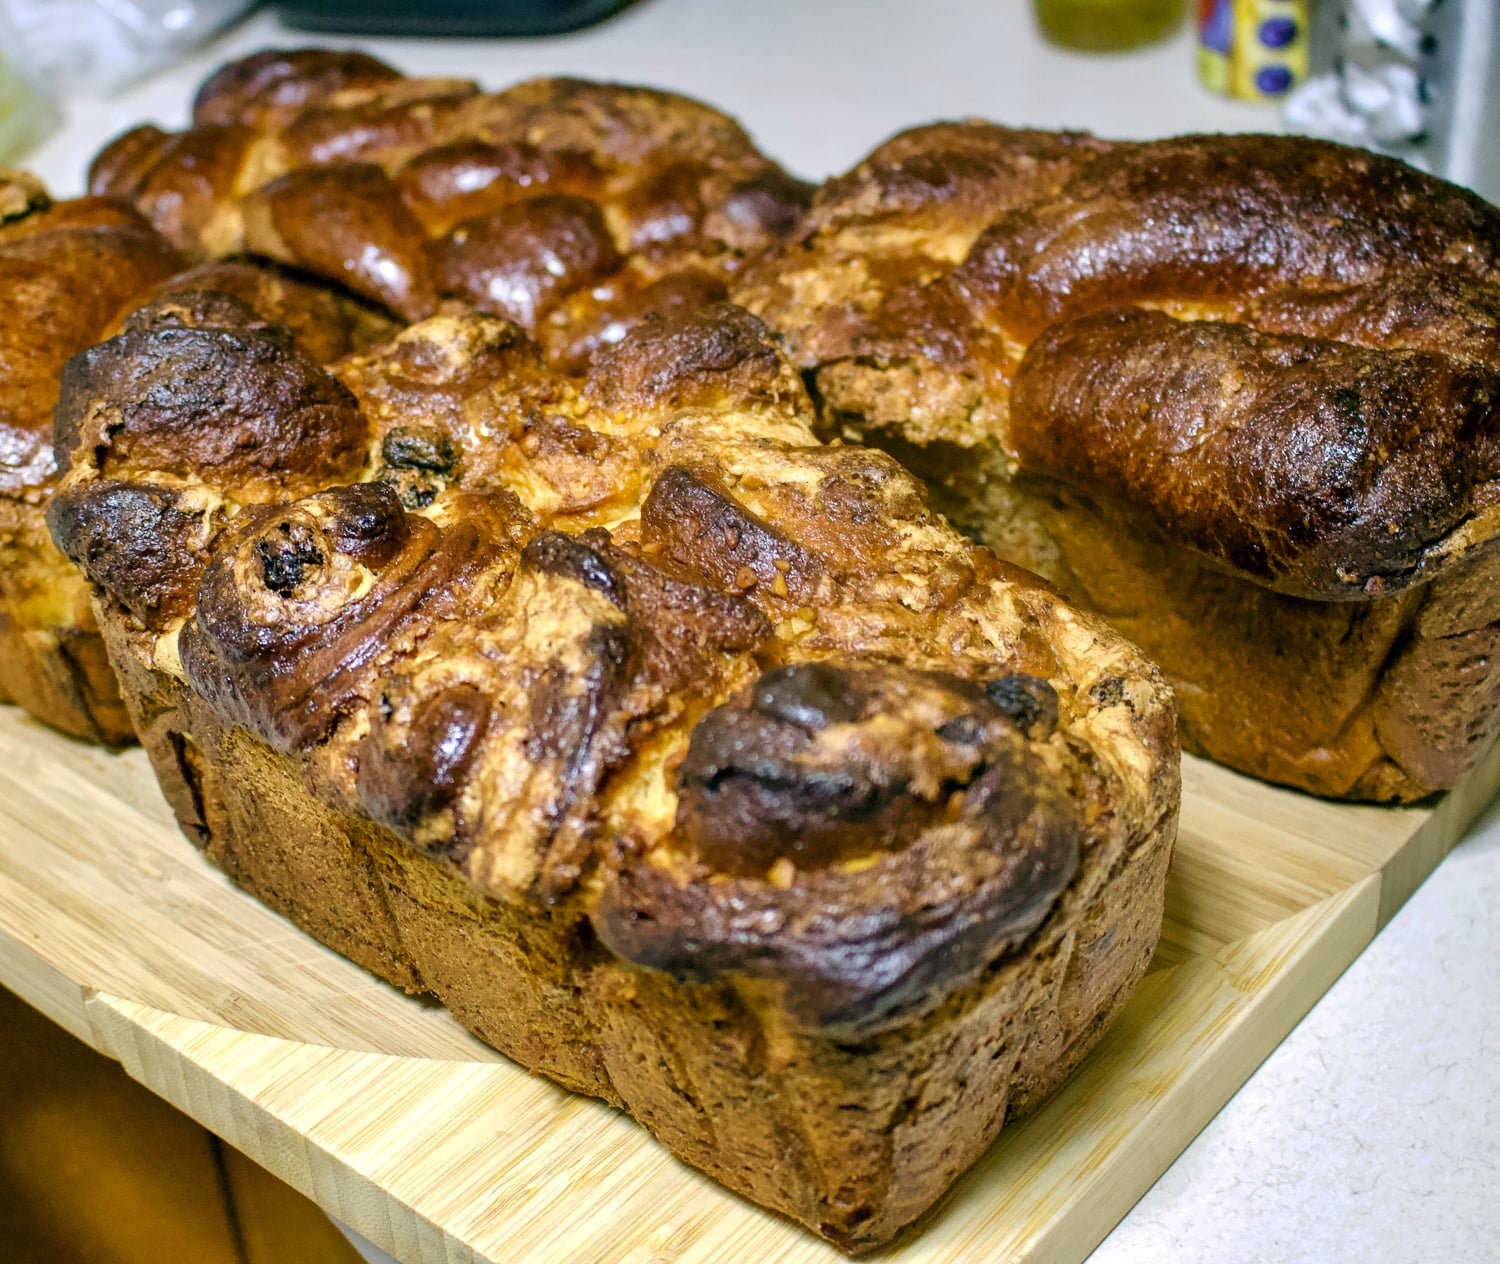 Romanian Traditional Sweet Bread With Walnuts- Cozonac is a recipe that is made every year for the holidays. Flour, sugar, eggs, milk and yeast are the main ingredients.